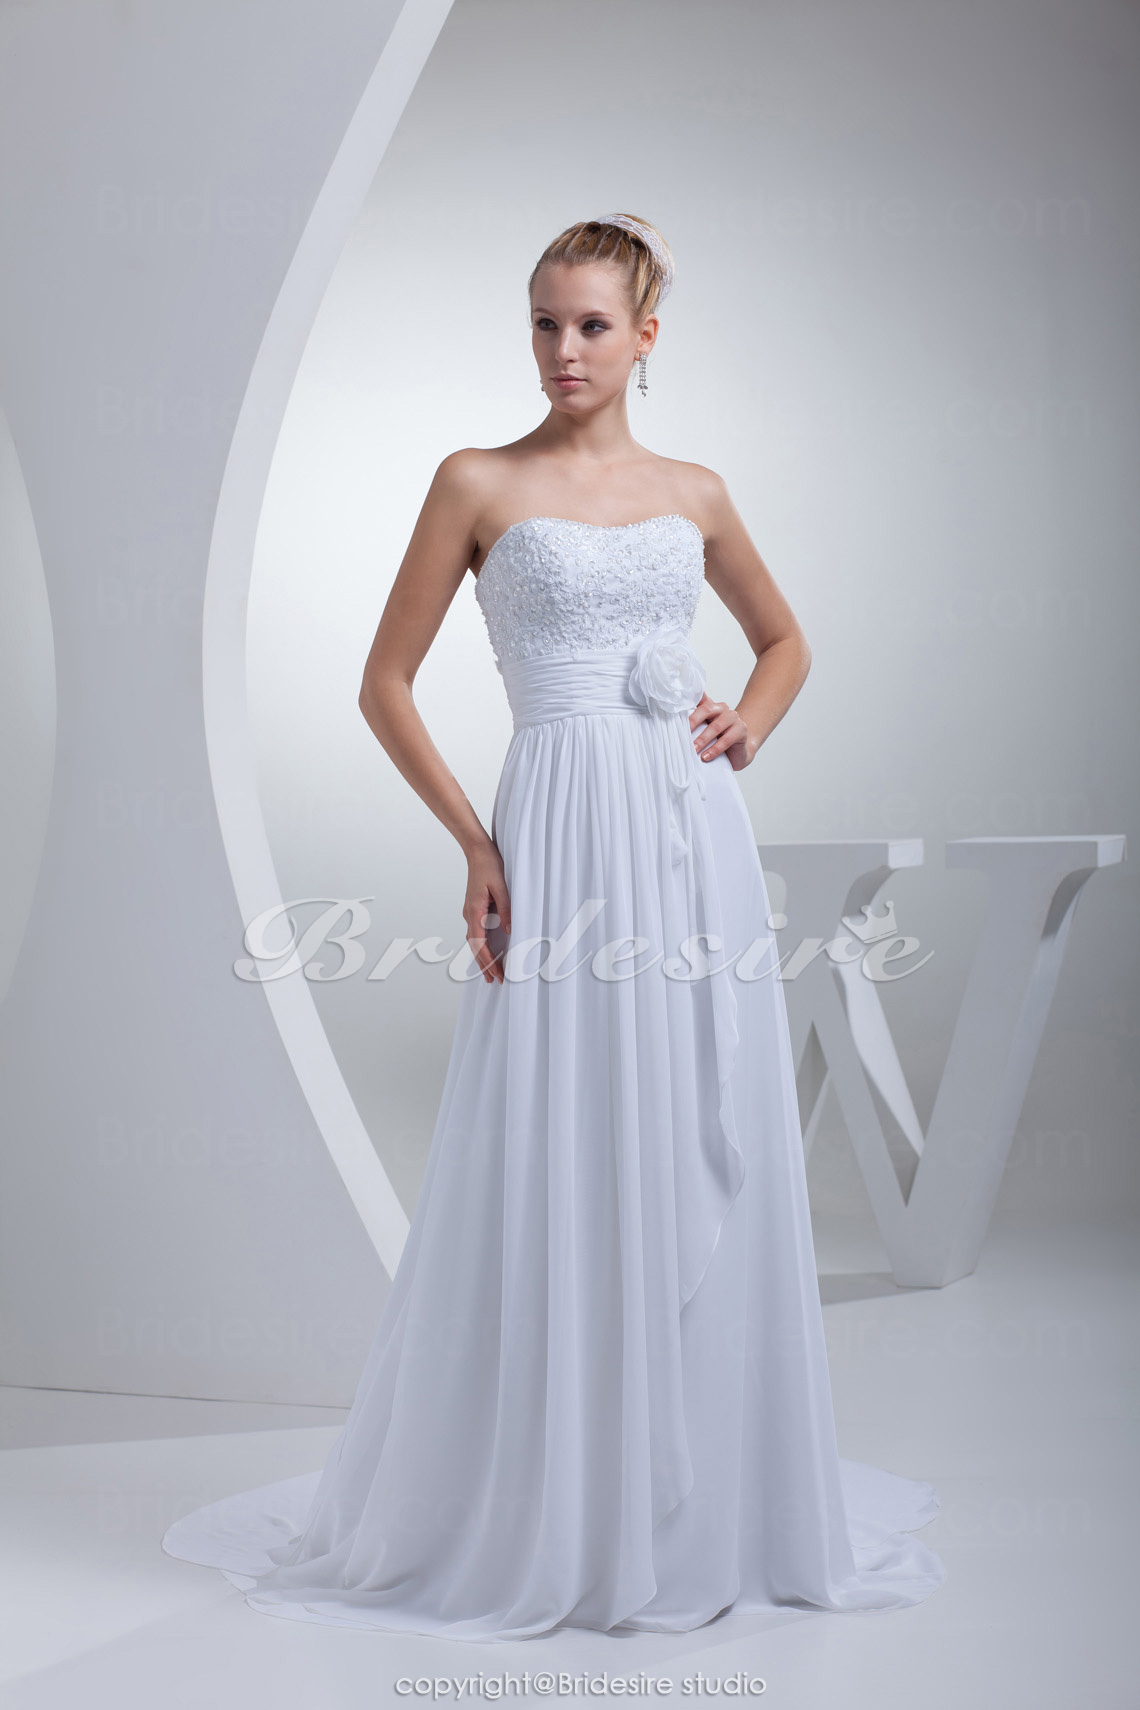 Sheath/Column Strapless Chapel Train Sleeveless Chiffon Wedding Dress